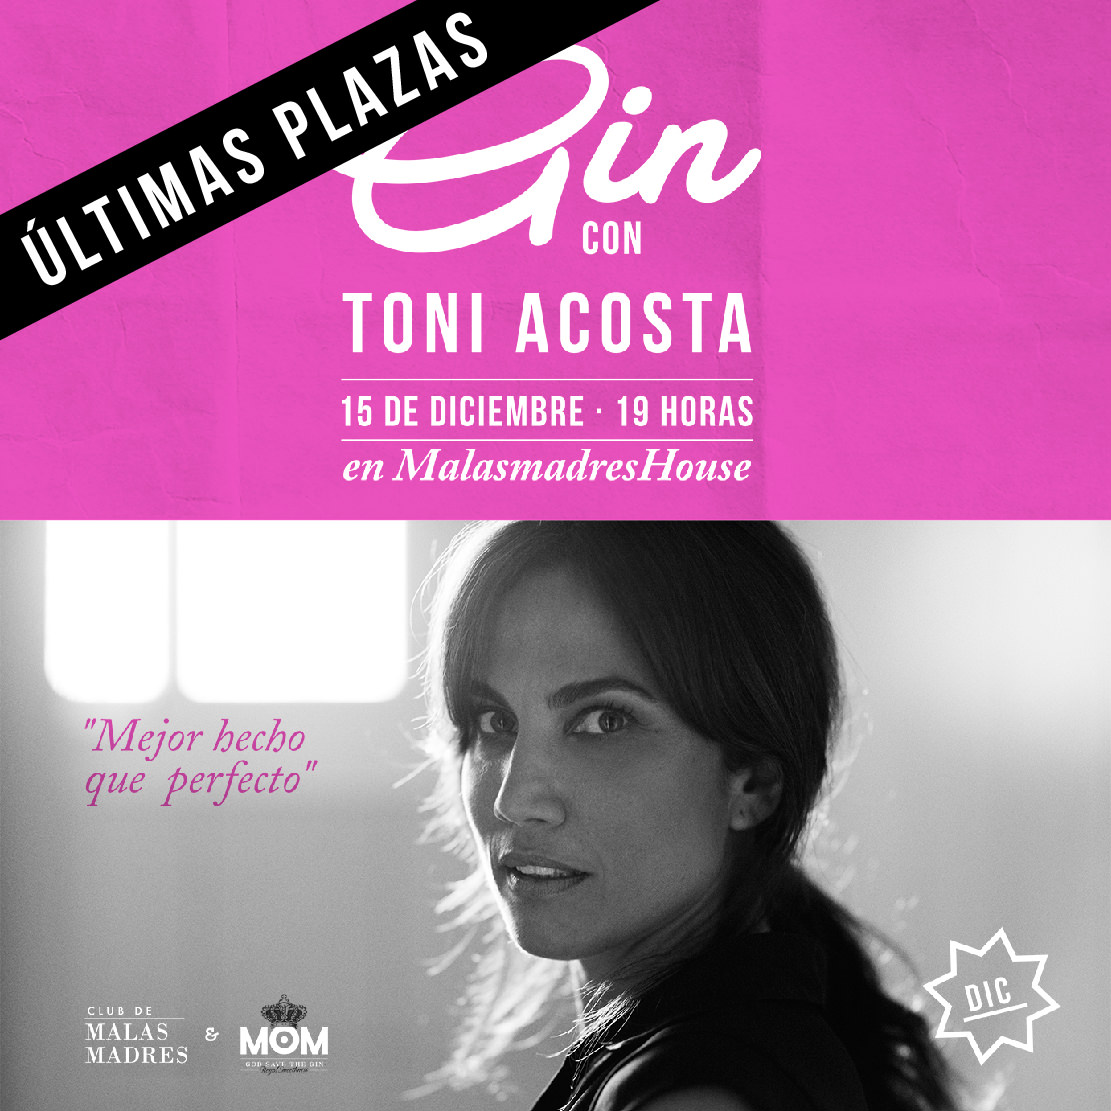 ungincon_toniacosta_Ultimasplazas-01